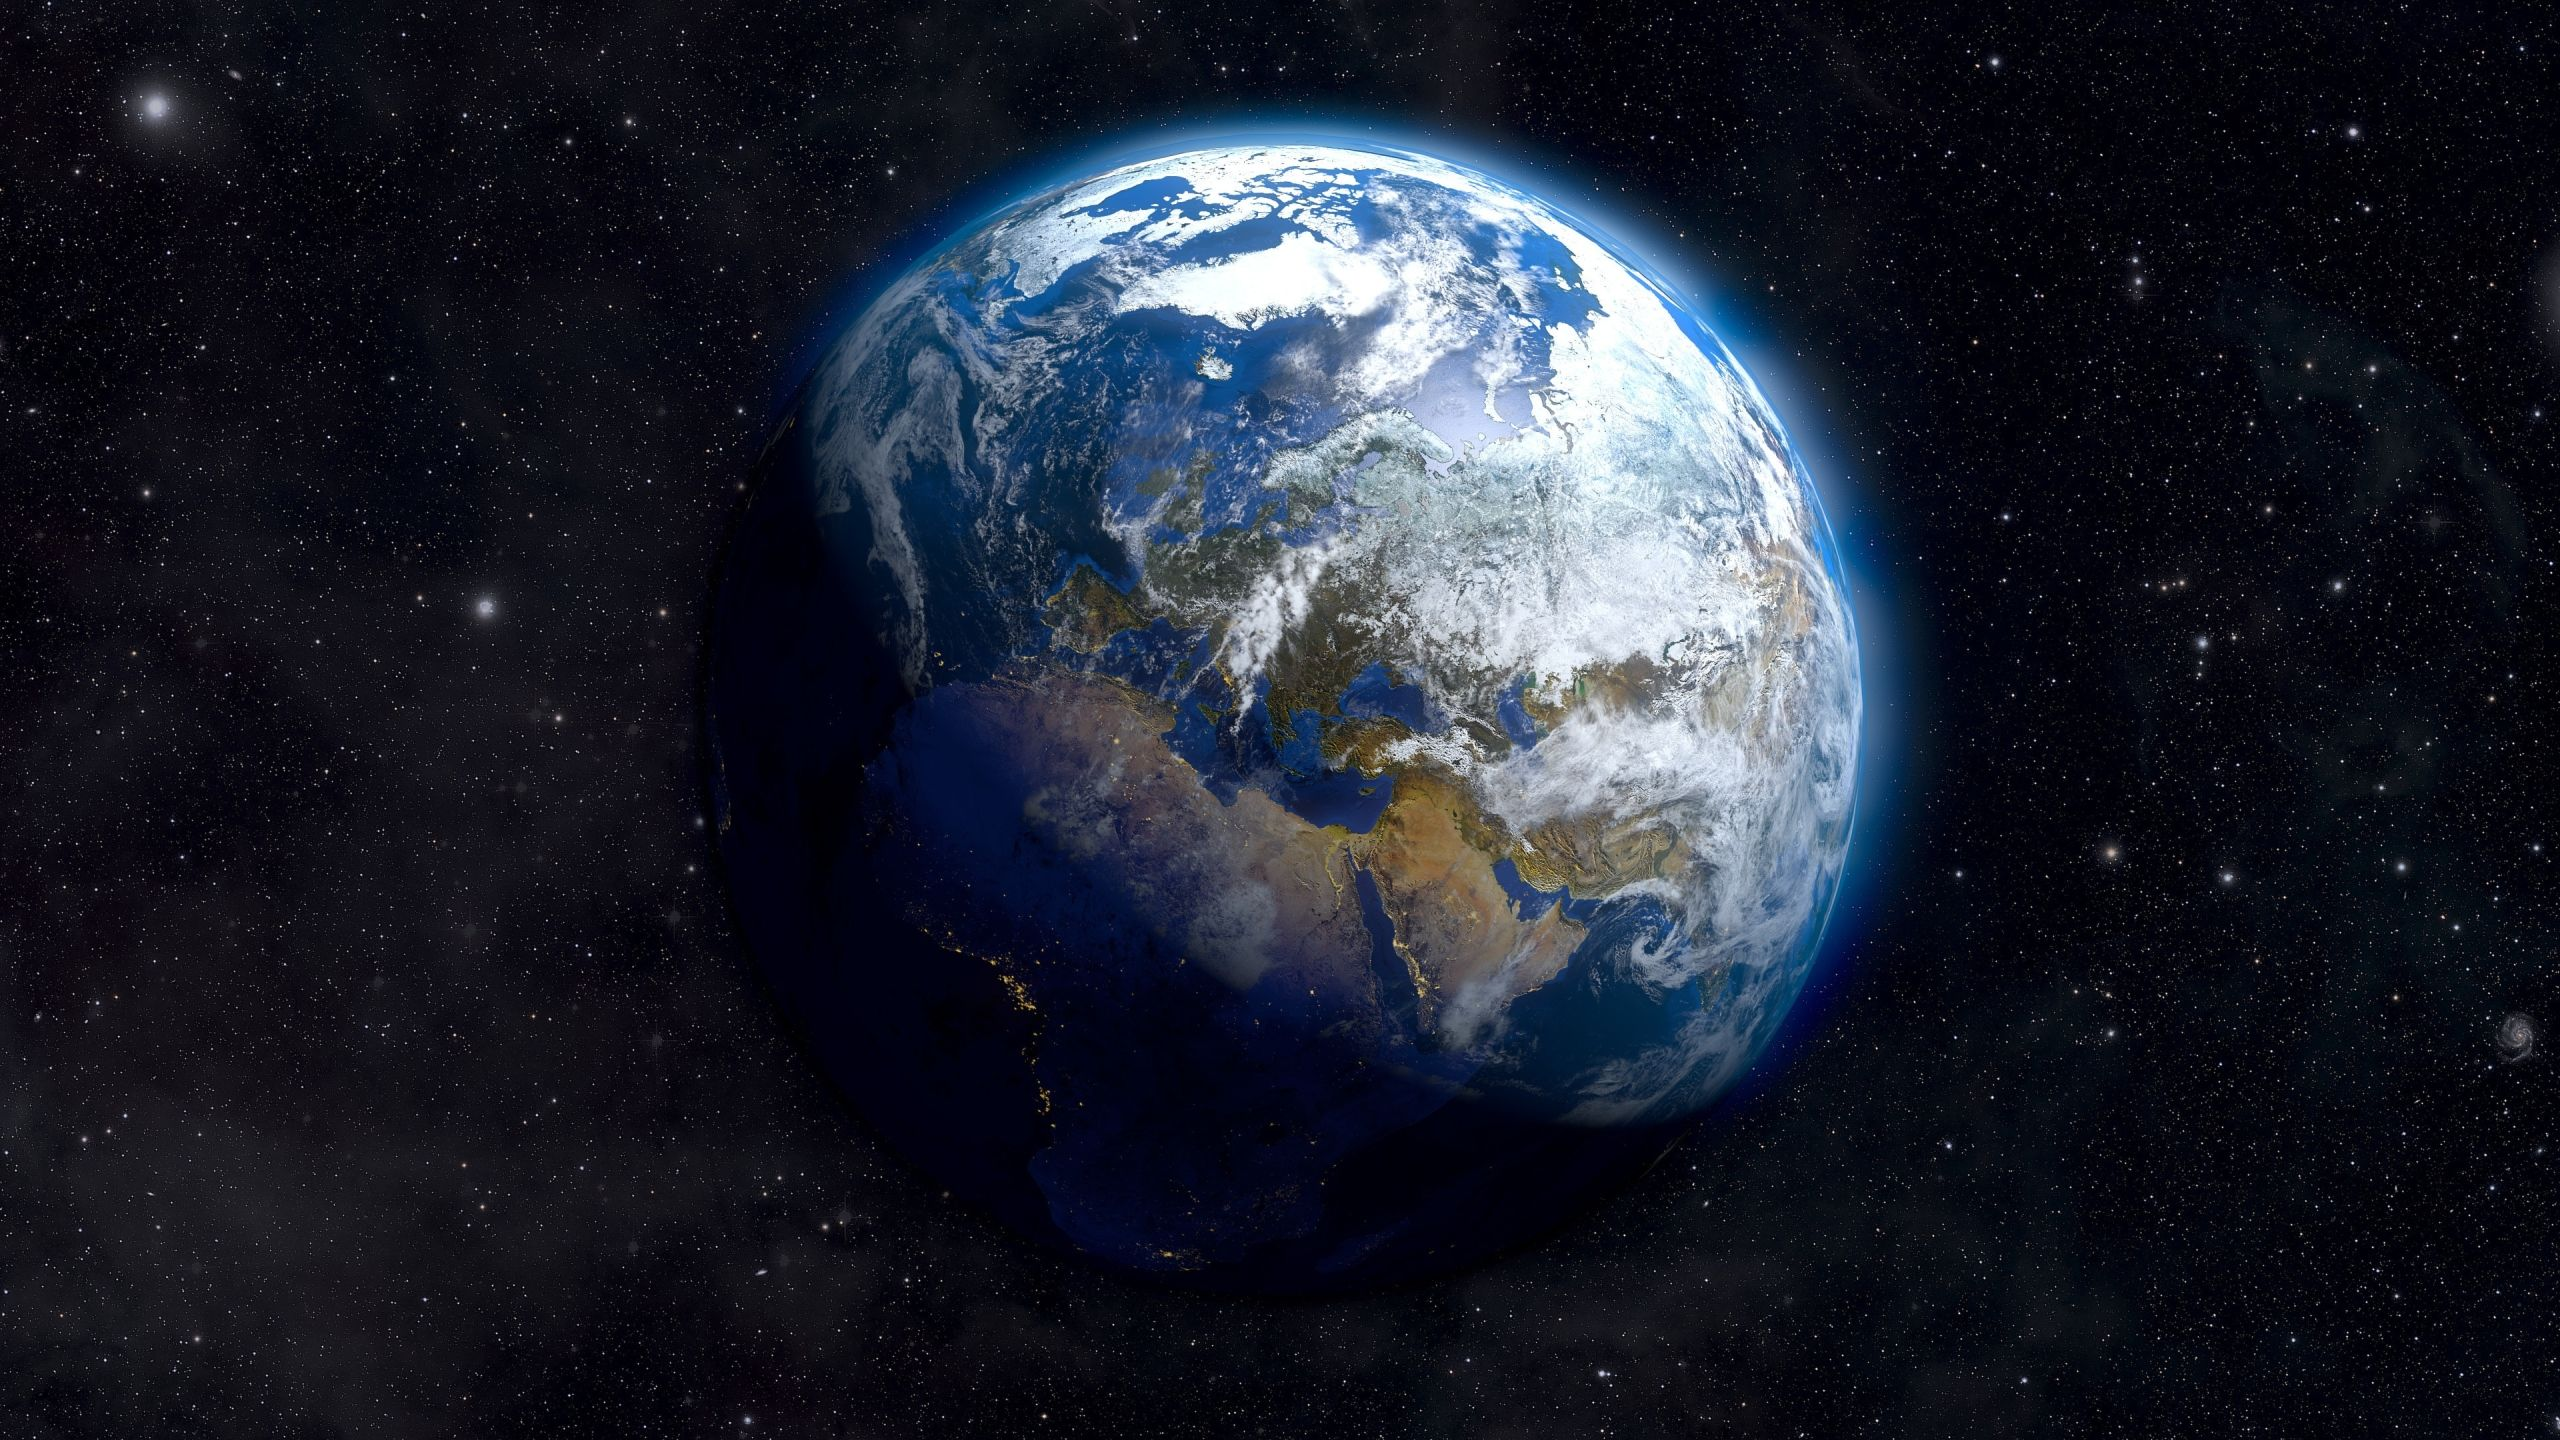 The Wallpapers Hd Planet Earth